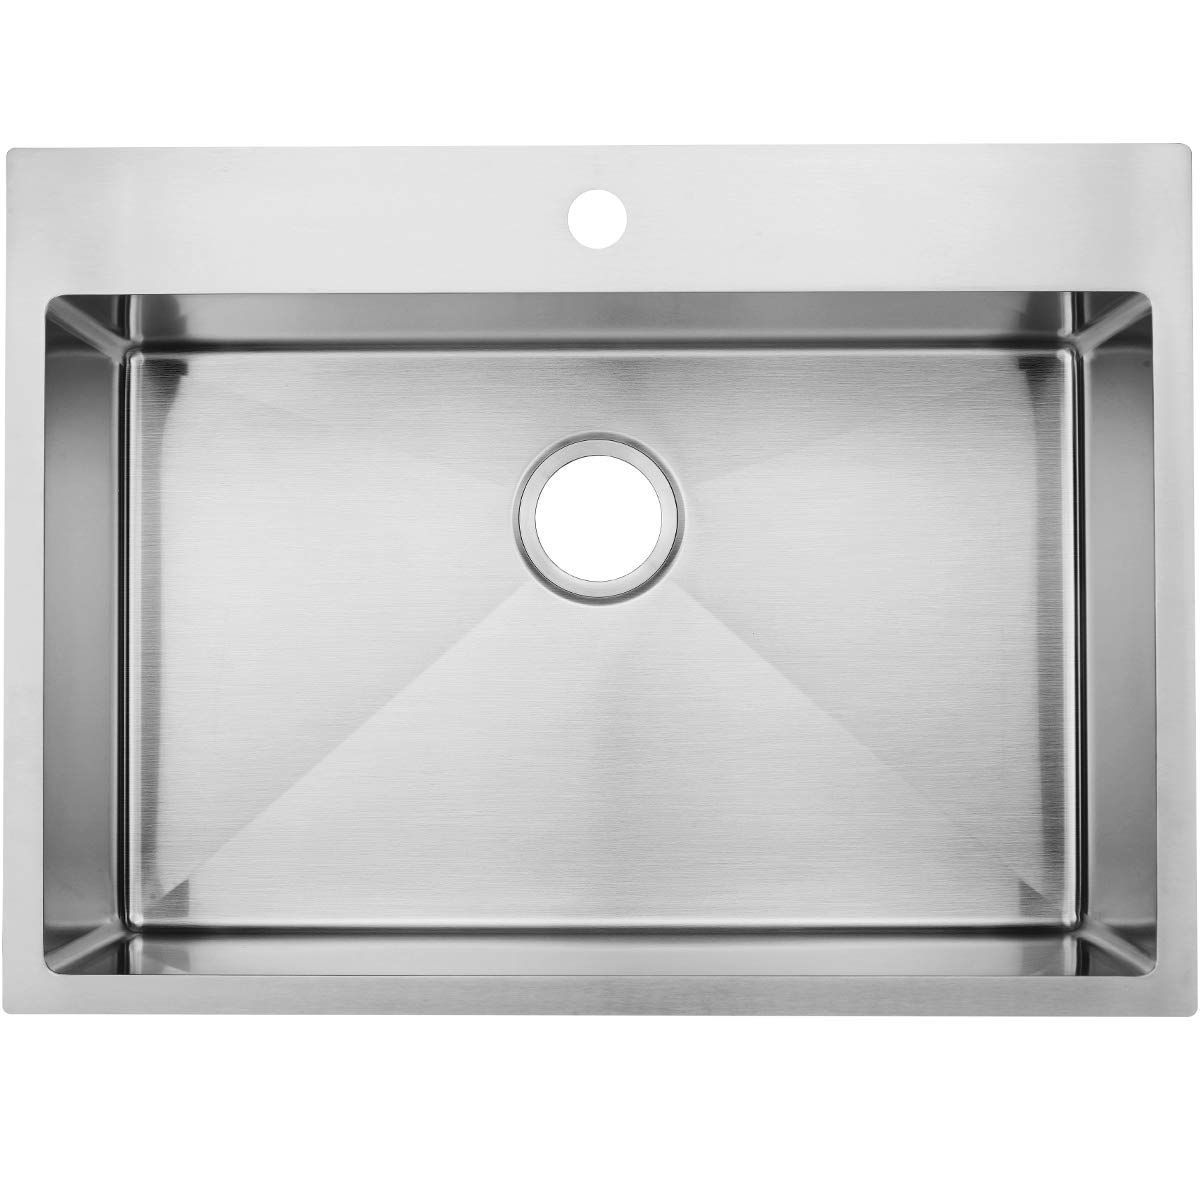 Small Wall Mount Corner Tempered Glass Bathroom Sink And Stainless Steel Bracket Chrome Finish Towel Bar With Mini Compact Square Vessel Bowl Includes Faucet Drain And Silicone Mounting Ring